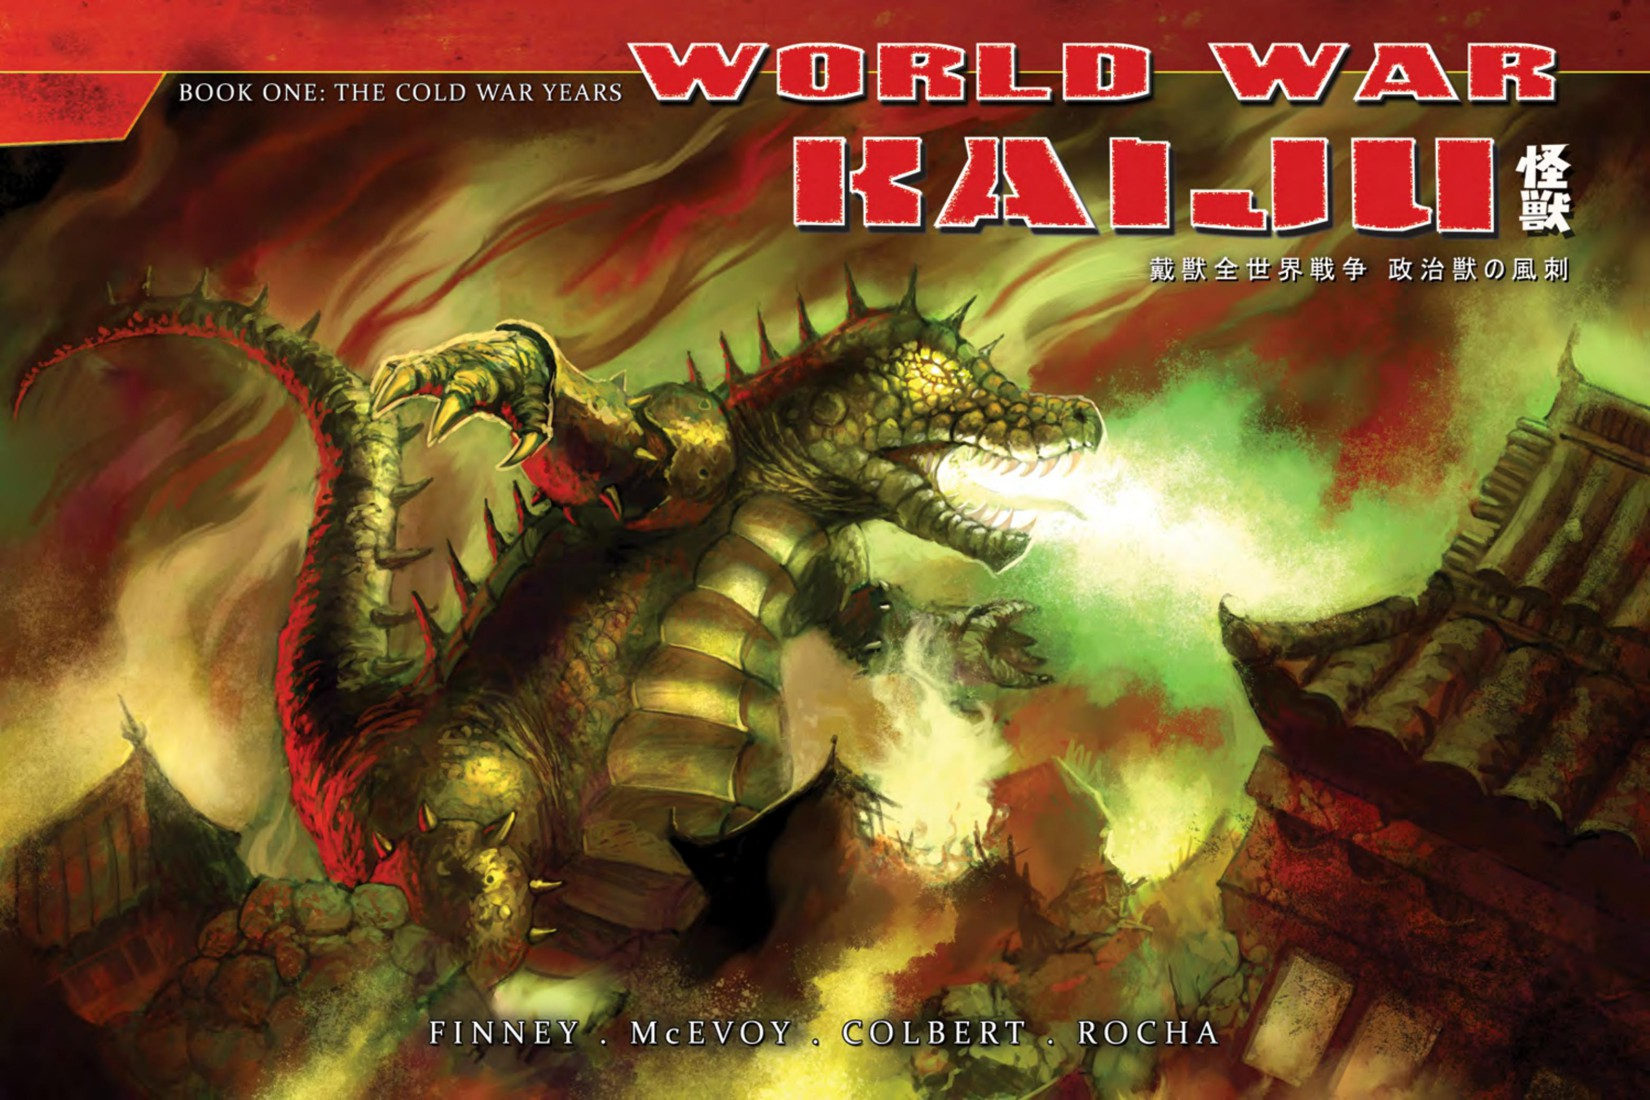 World War Kaiju vol1a - Unknown